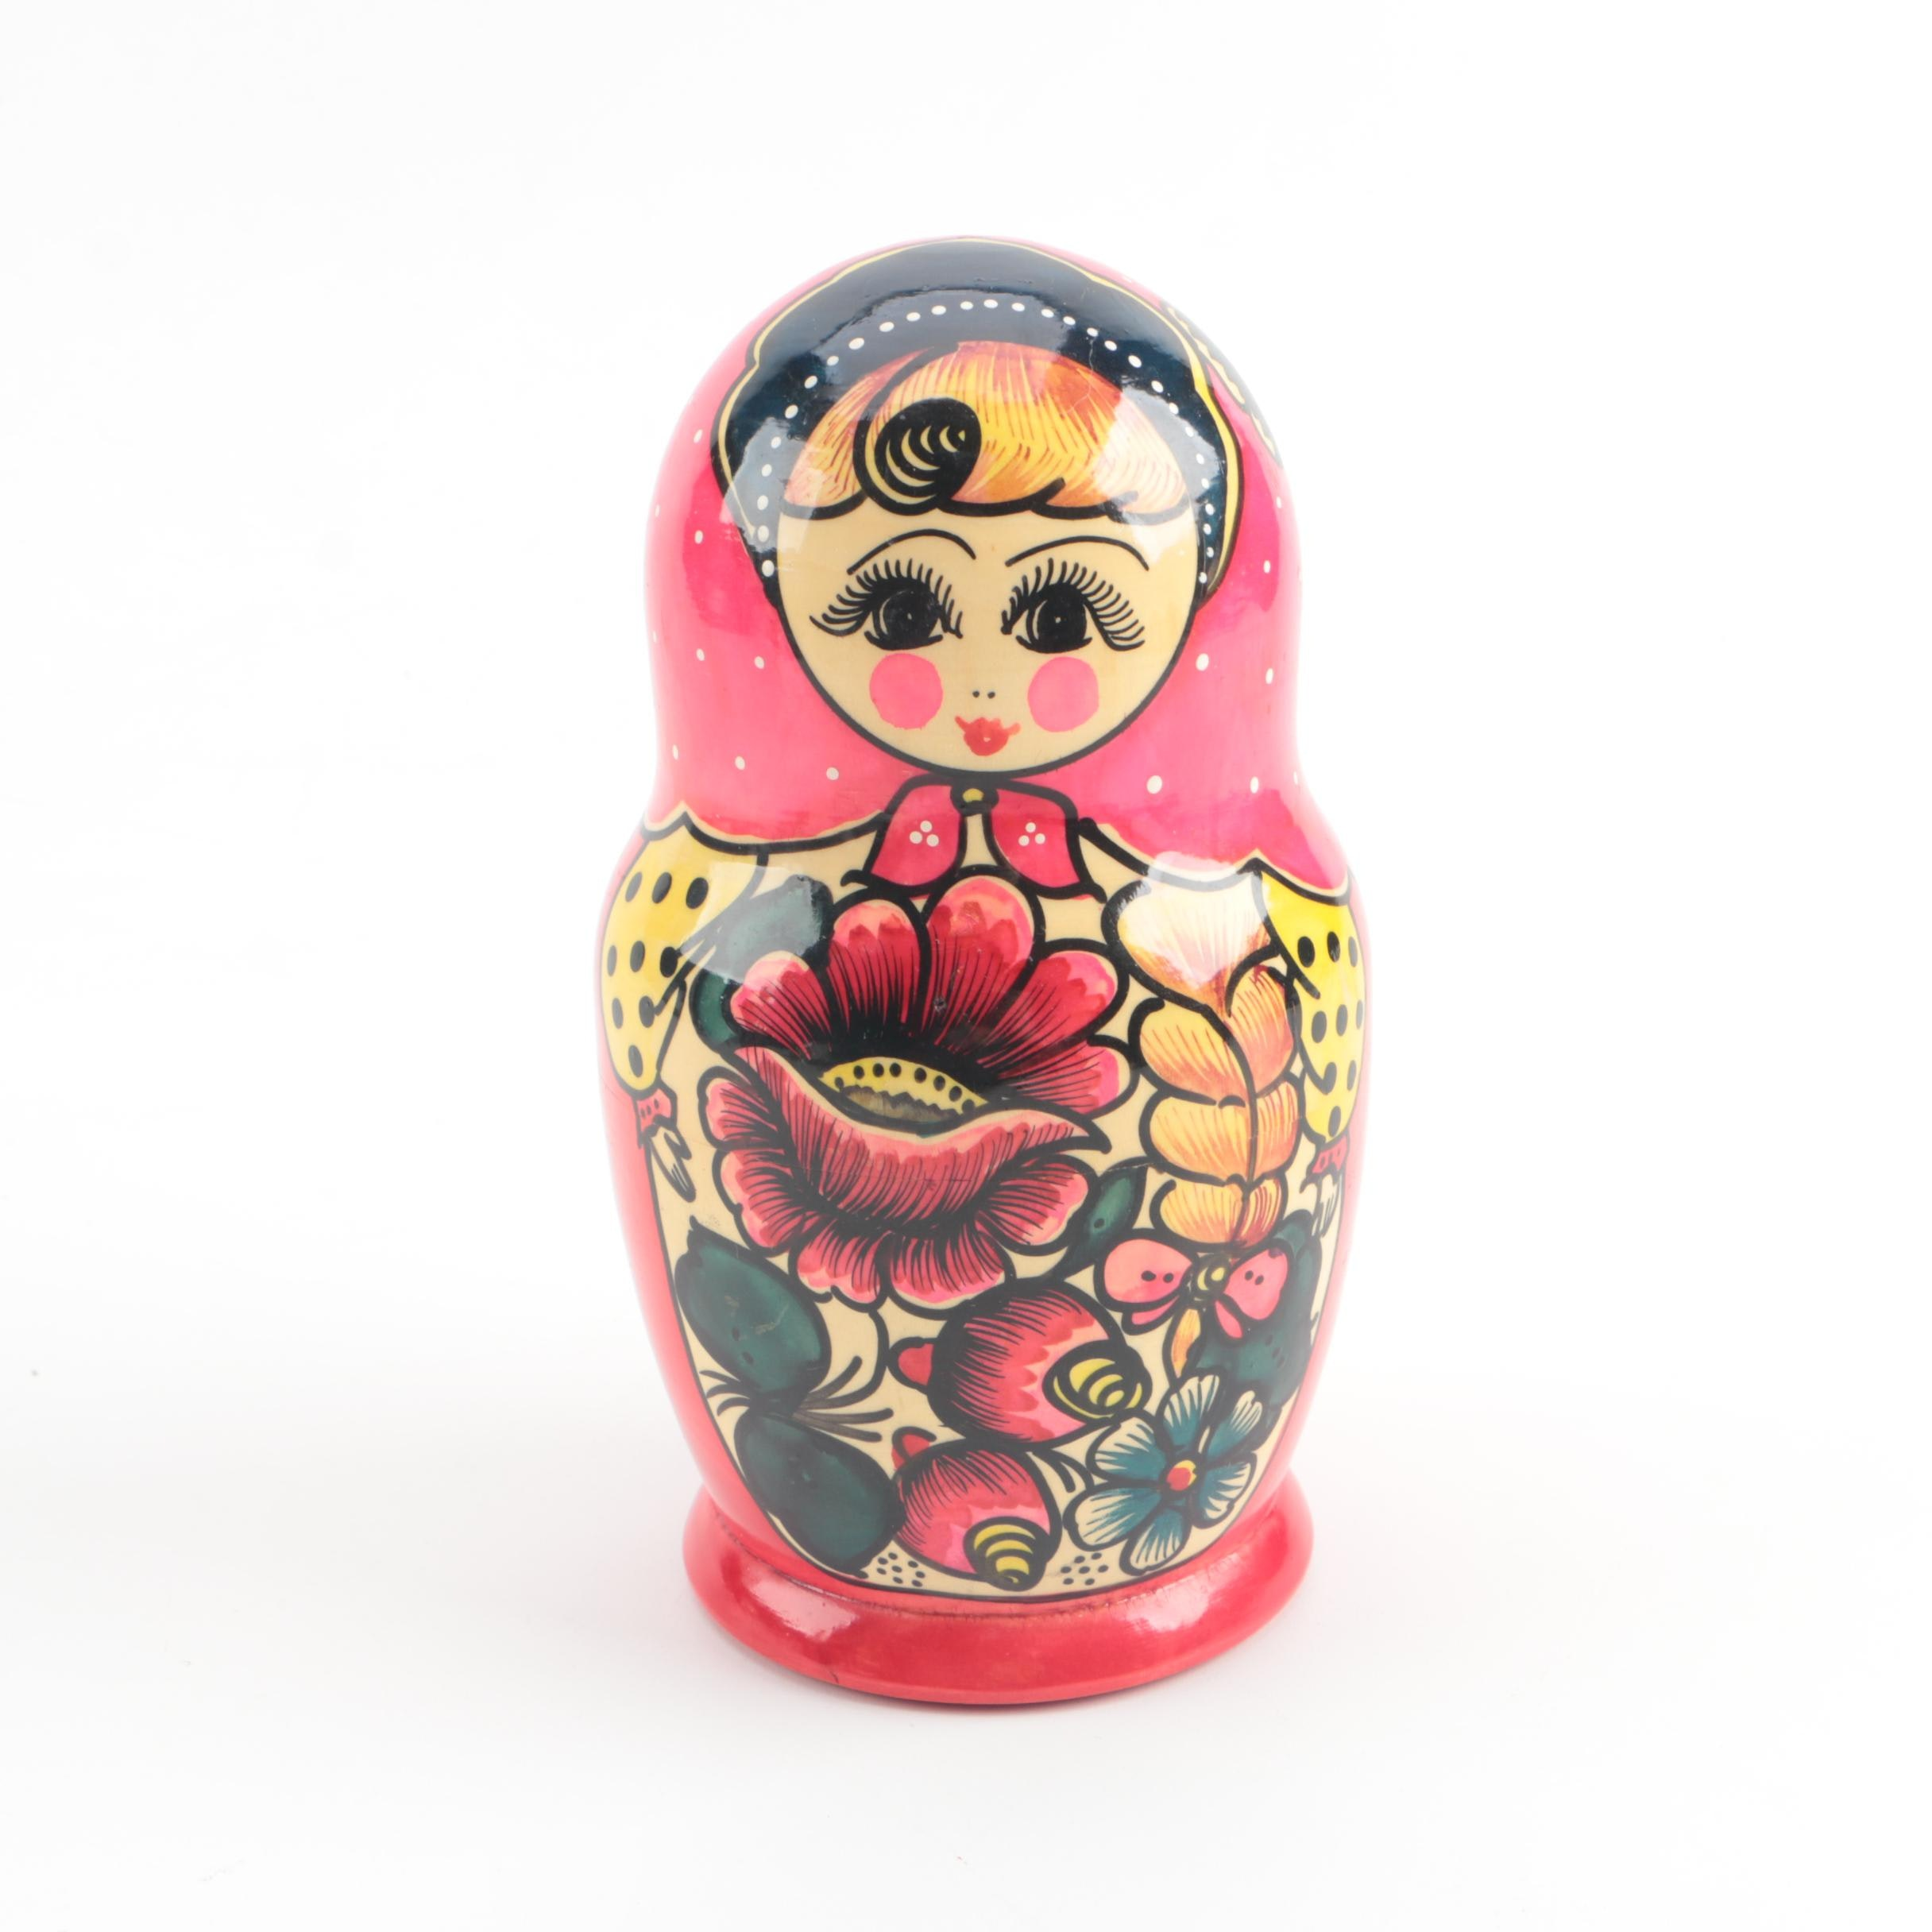 Hand-Painted Matryoshka Nesting Doll with Floral Motif